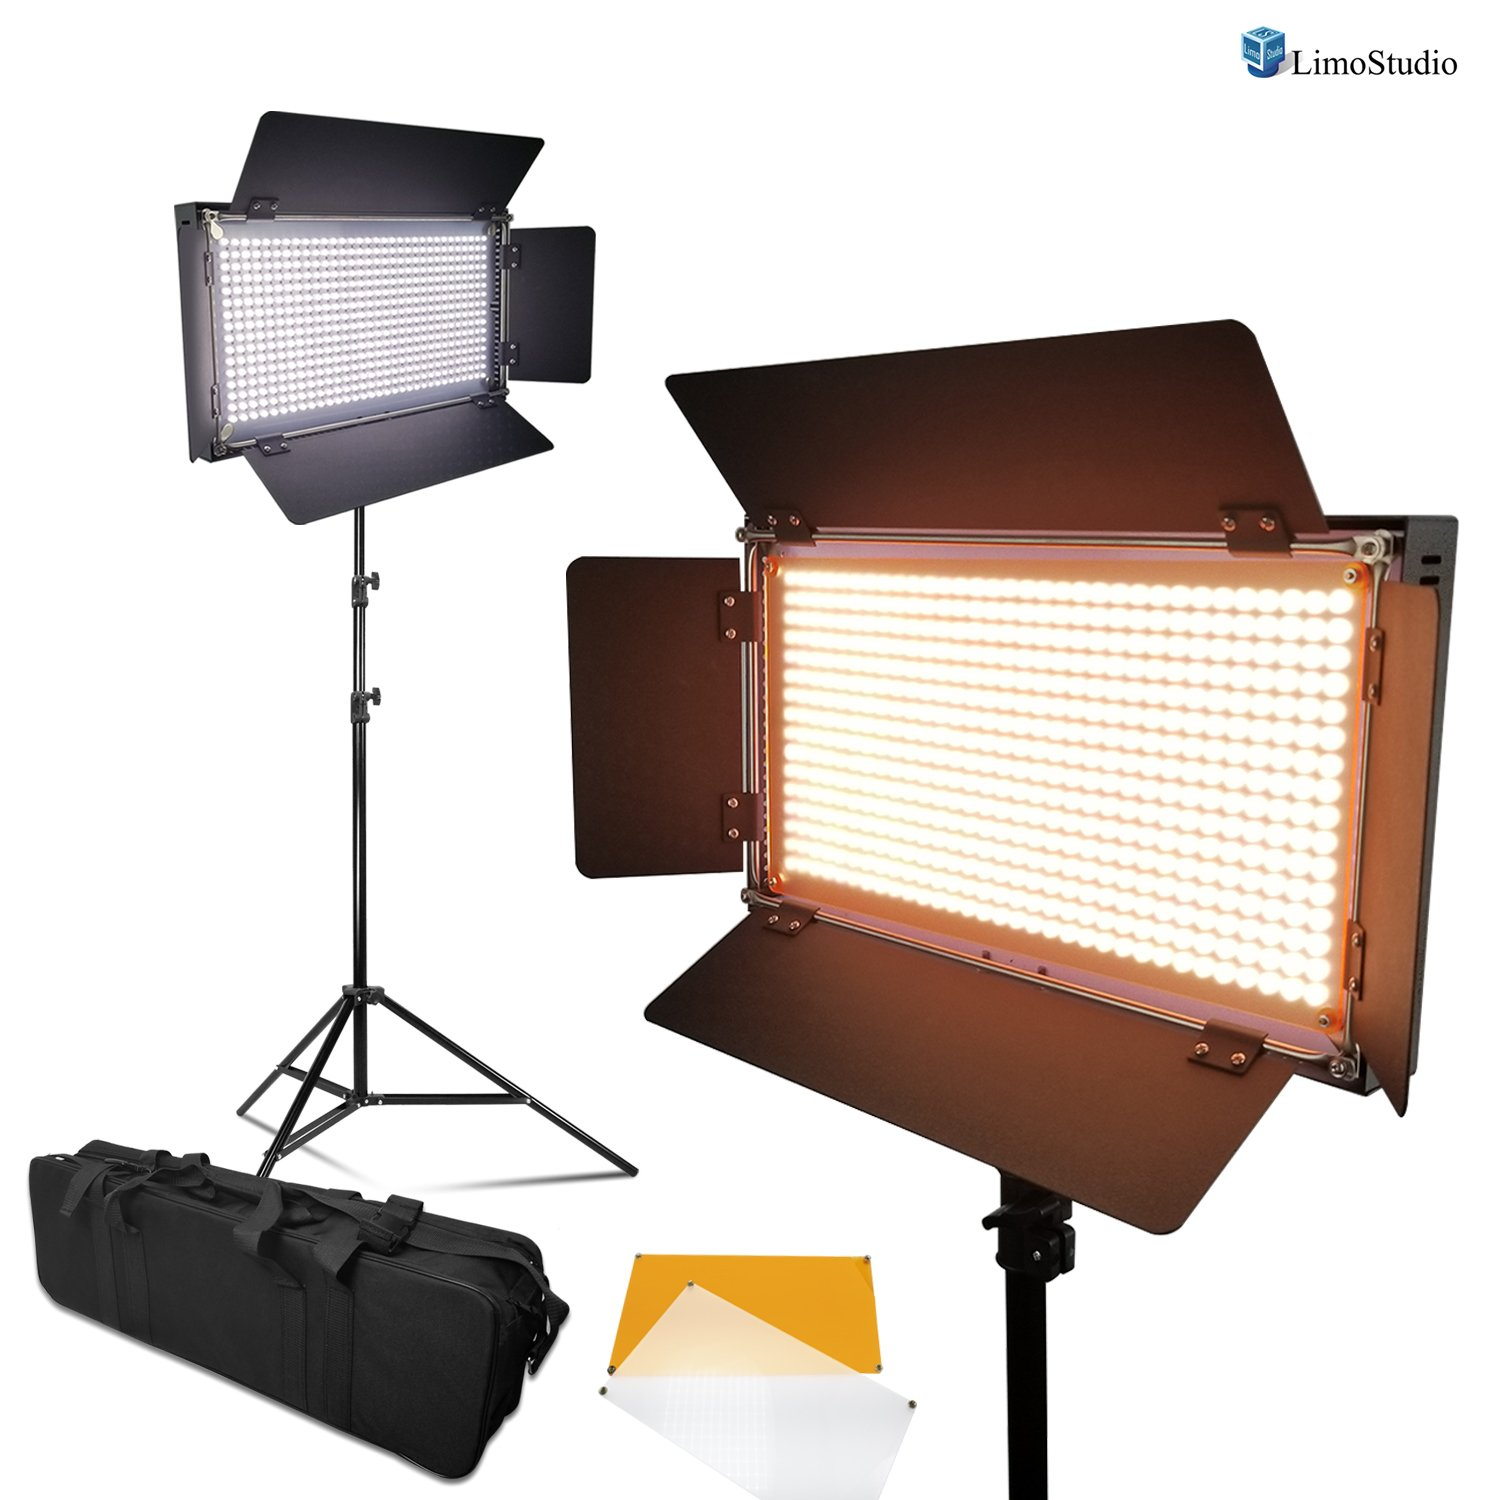 LimoStudio 2-Pack Dimmable LED Photography Photo Video Light Panel